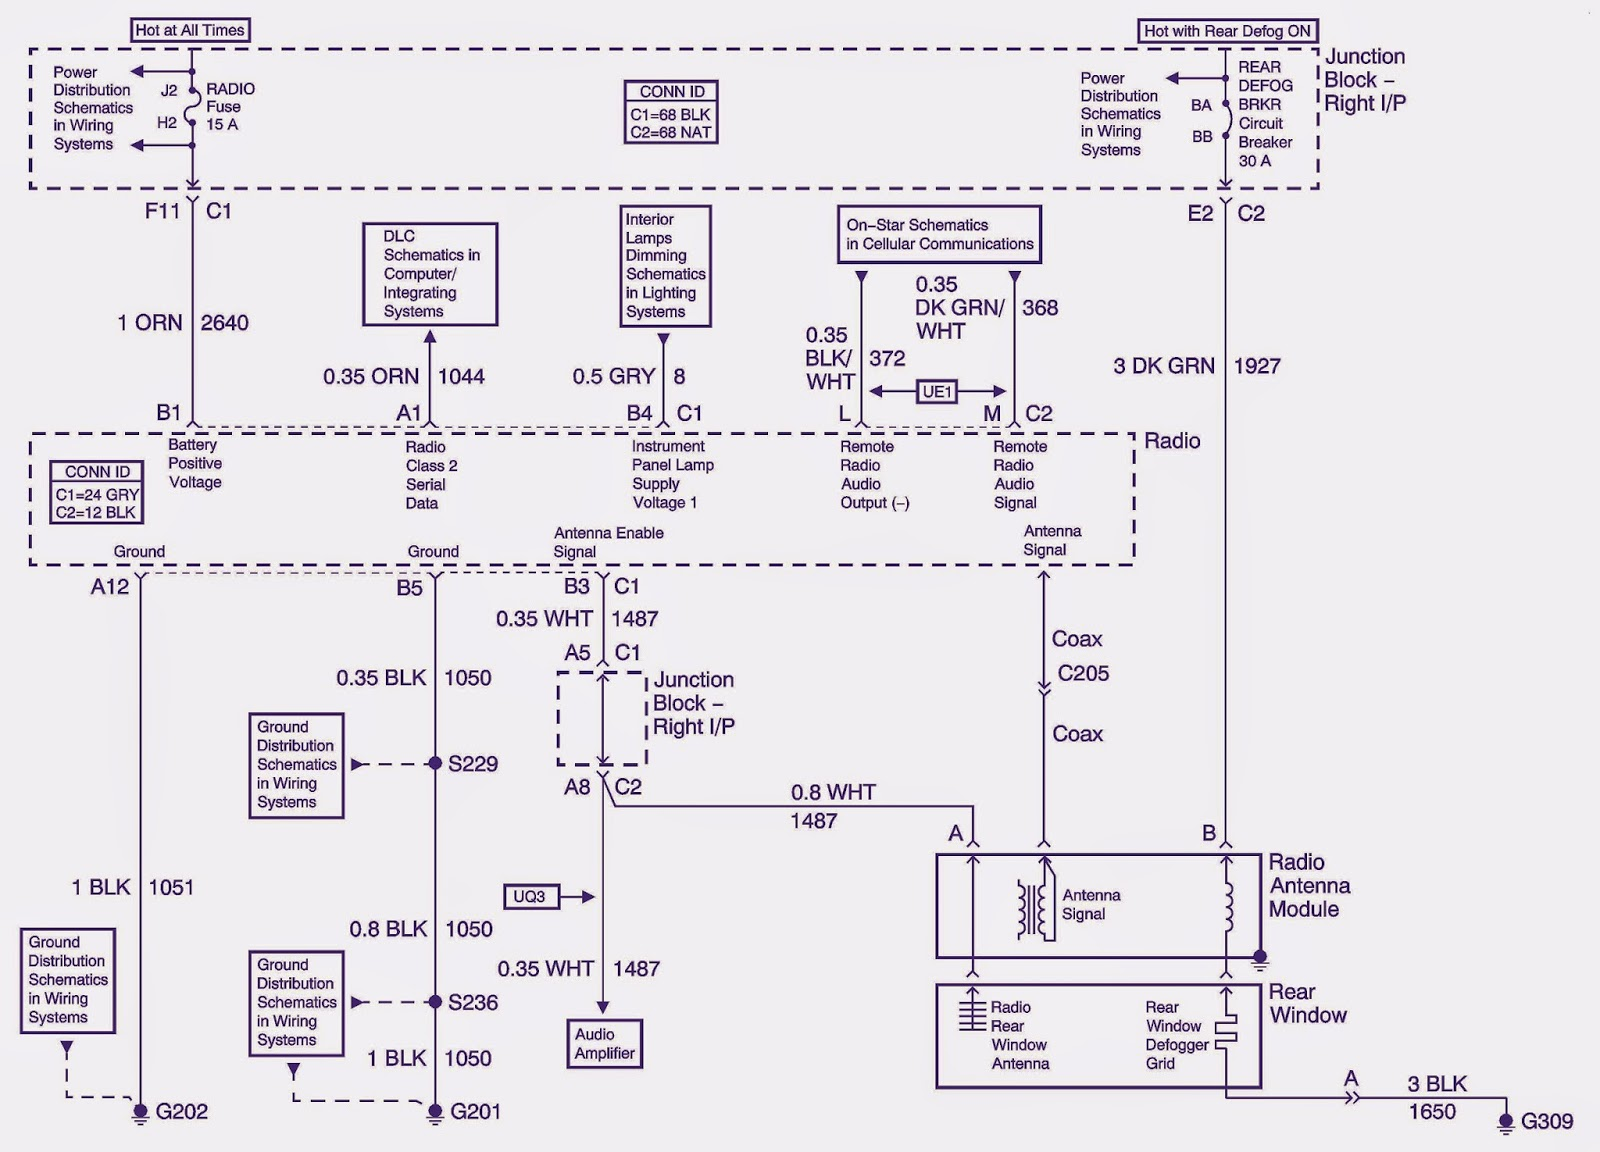 medium resolution of wiring diagram for 1986 chevrolet monte carlo wiring library 2003 monte carlo engine diagram 1997 monte carlo wiring diagram